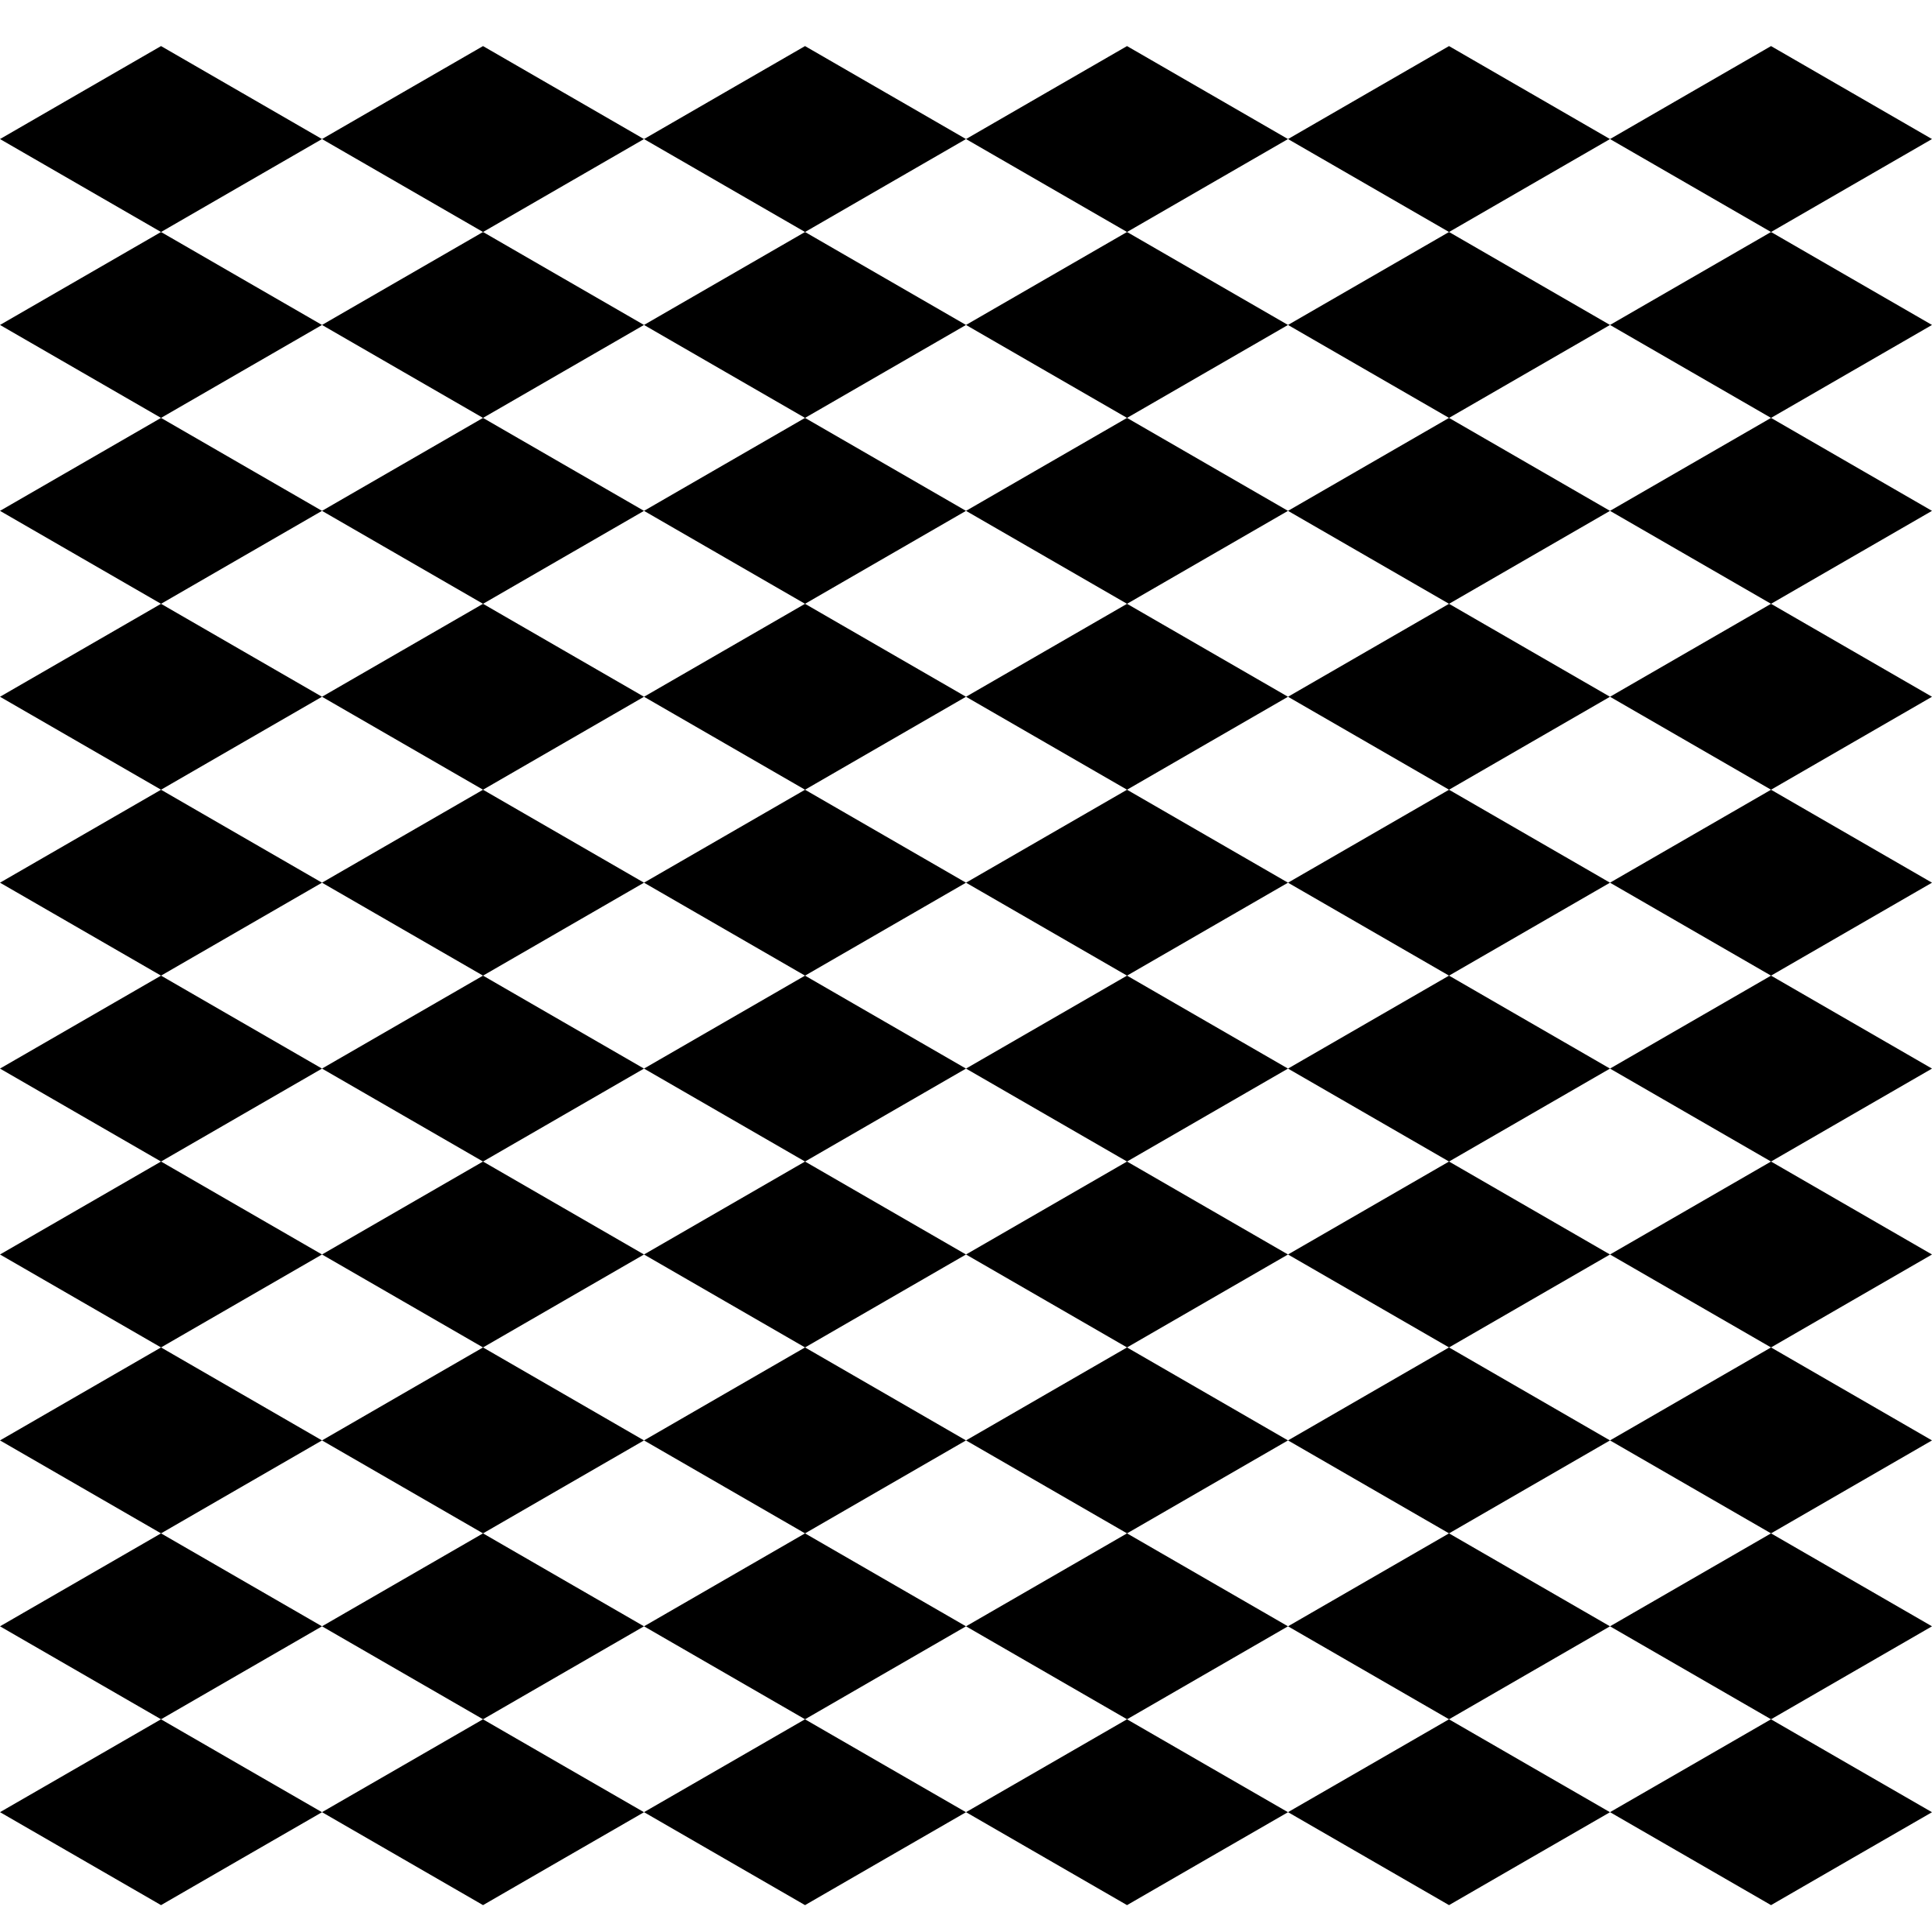 diamond chessboard by 10binary